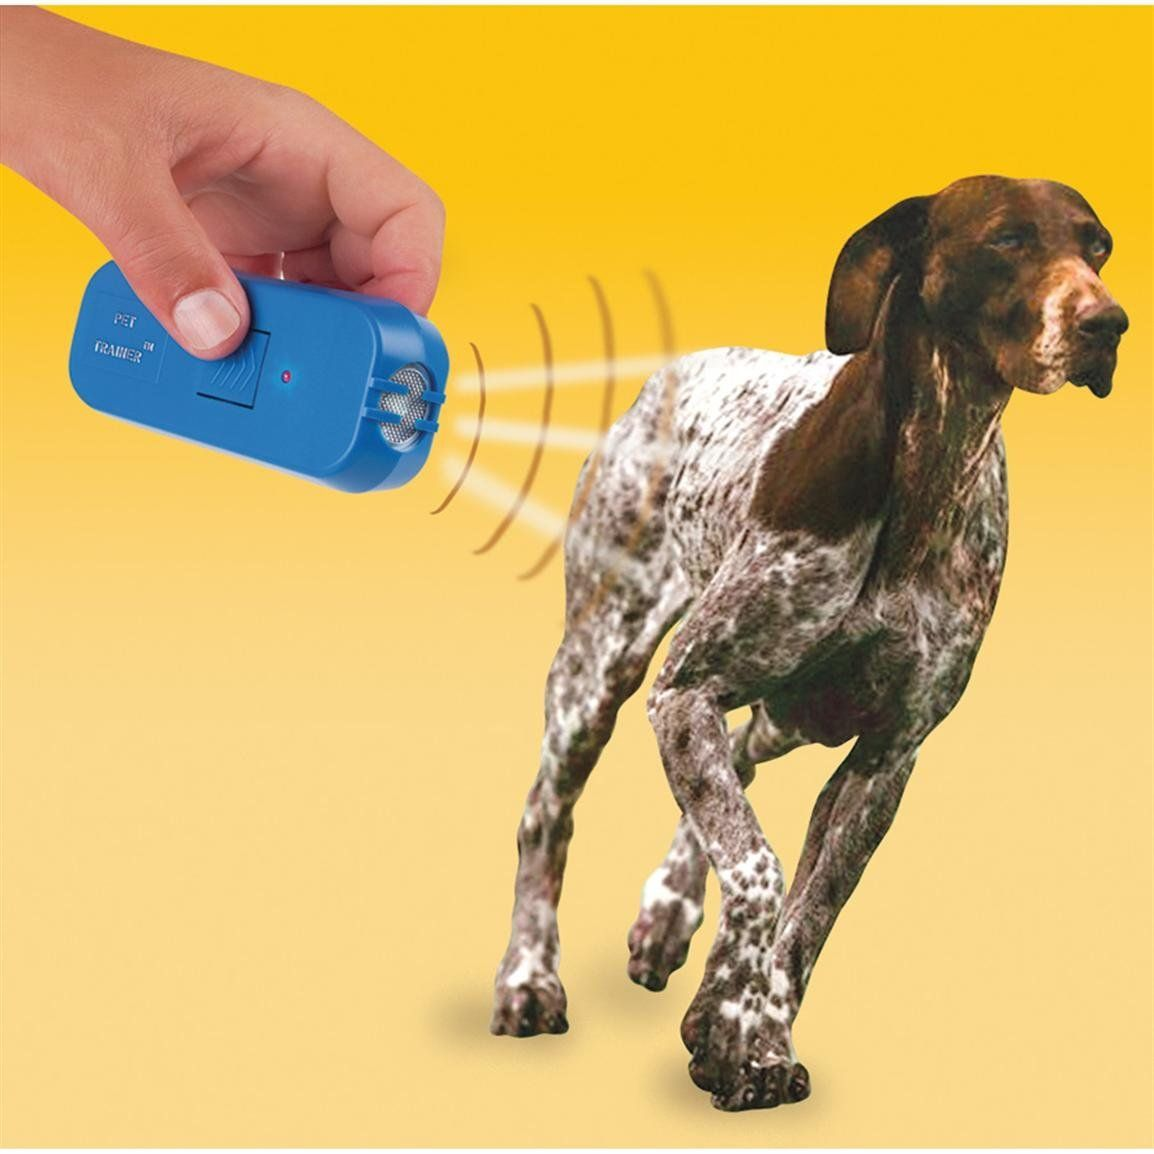 Pet Trainer The Humane Pet Training System As Seen On Tv Check